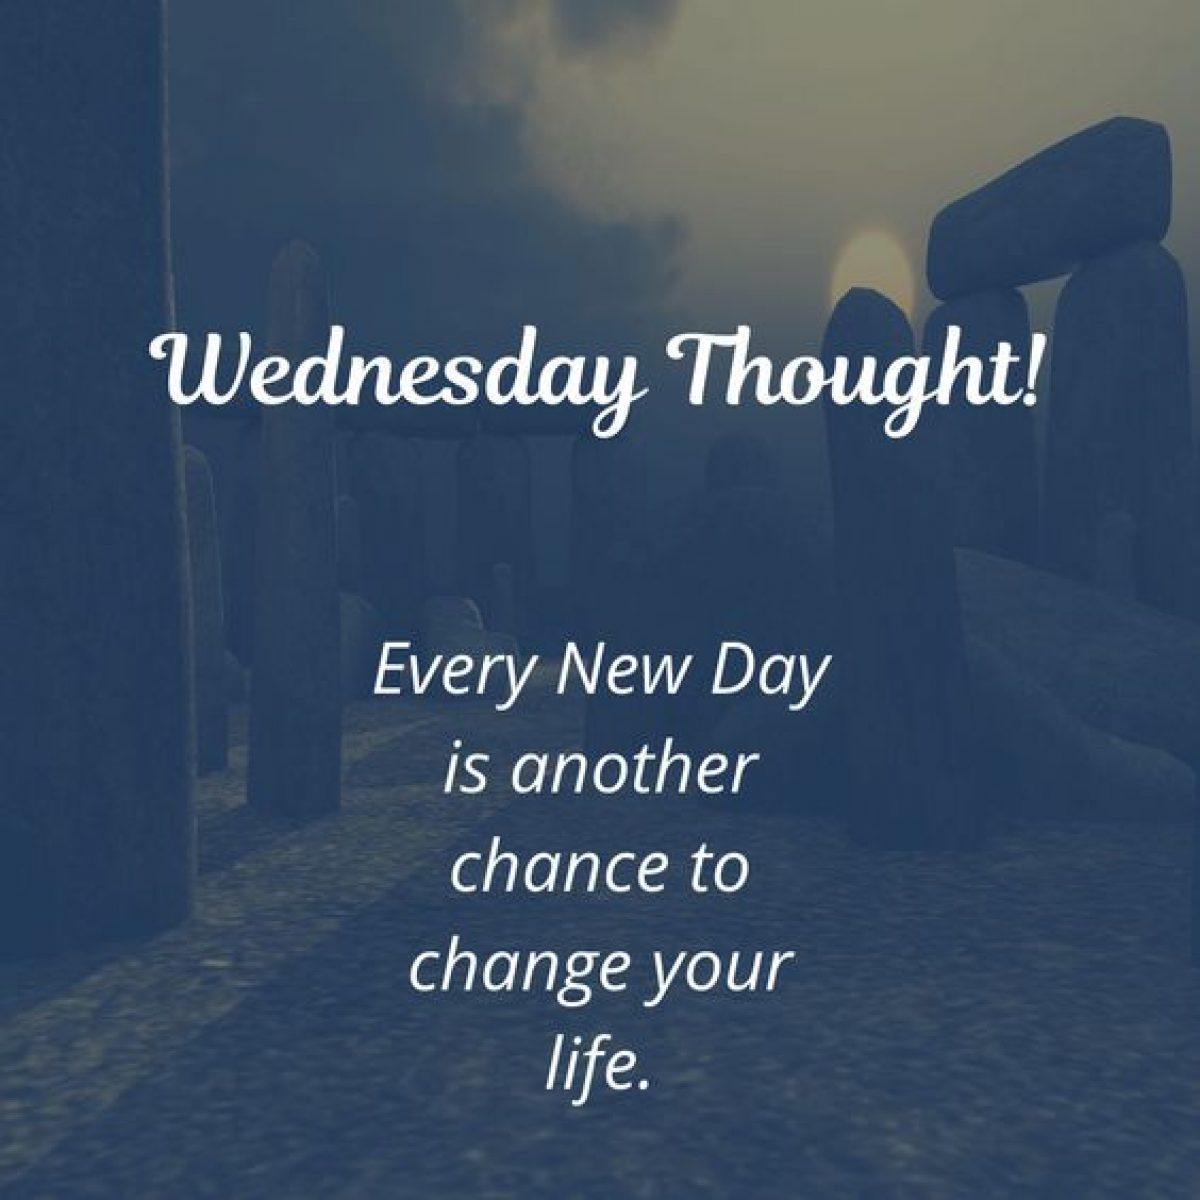 110 Best Wednesday Motivational Quotes for Work